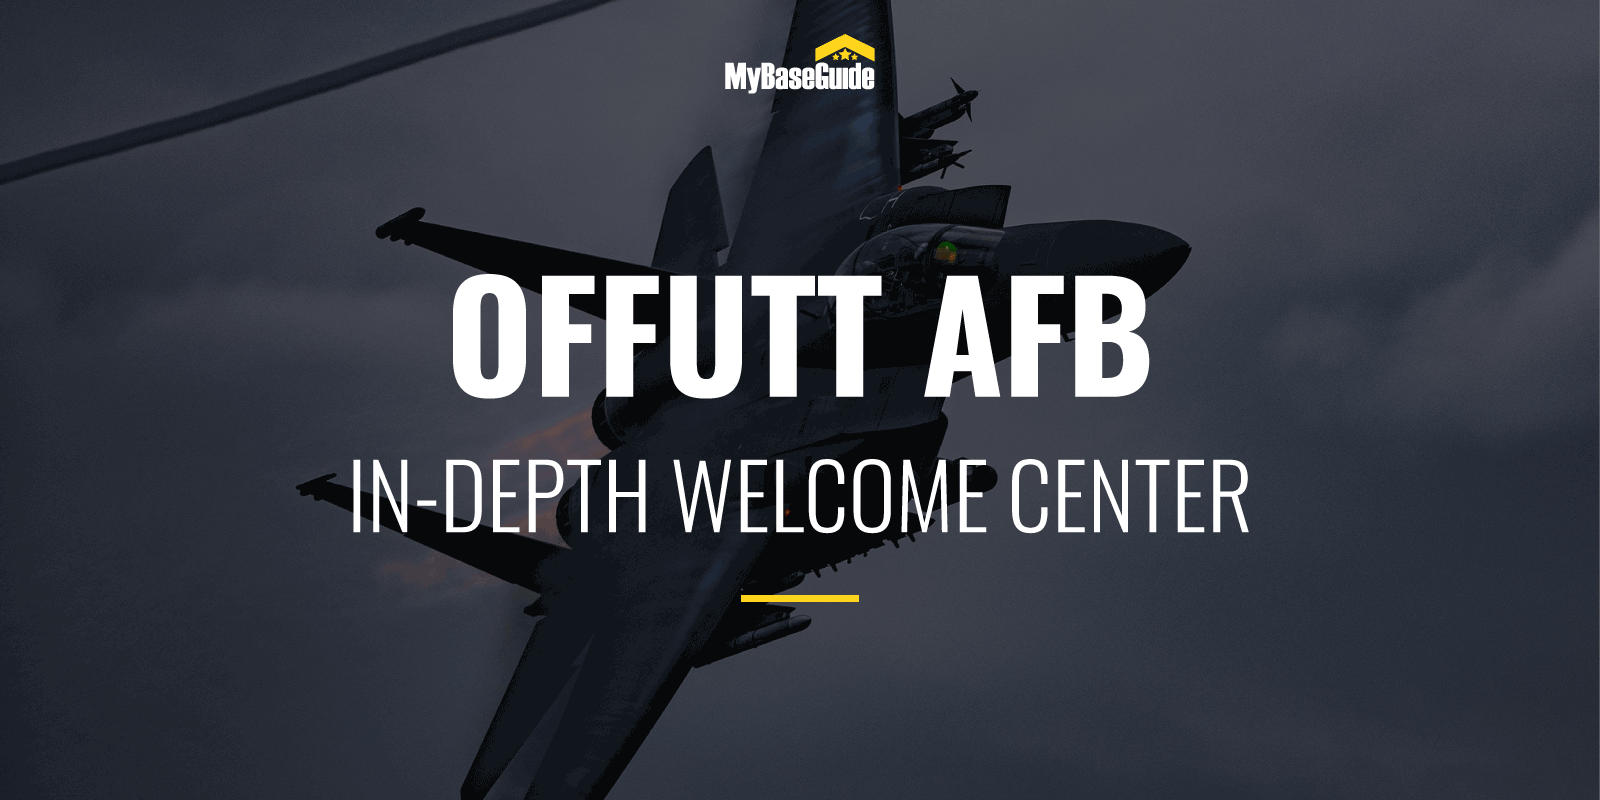 Offutt AFB: In-Depth Welcome Center